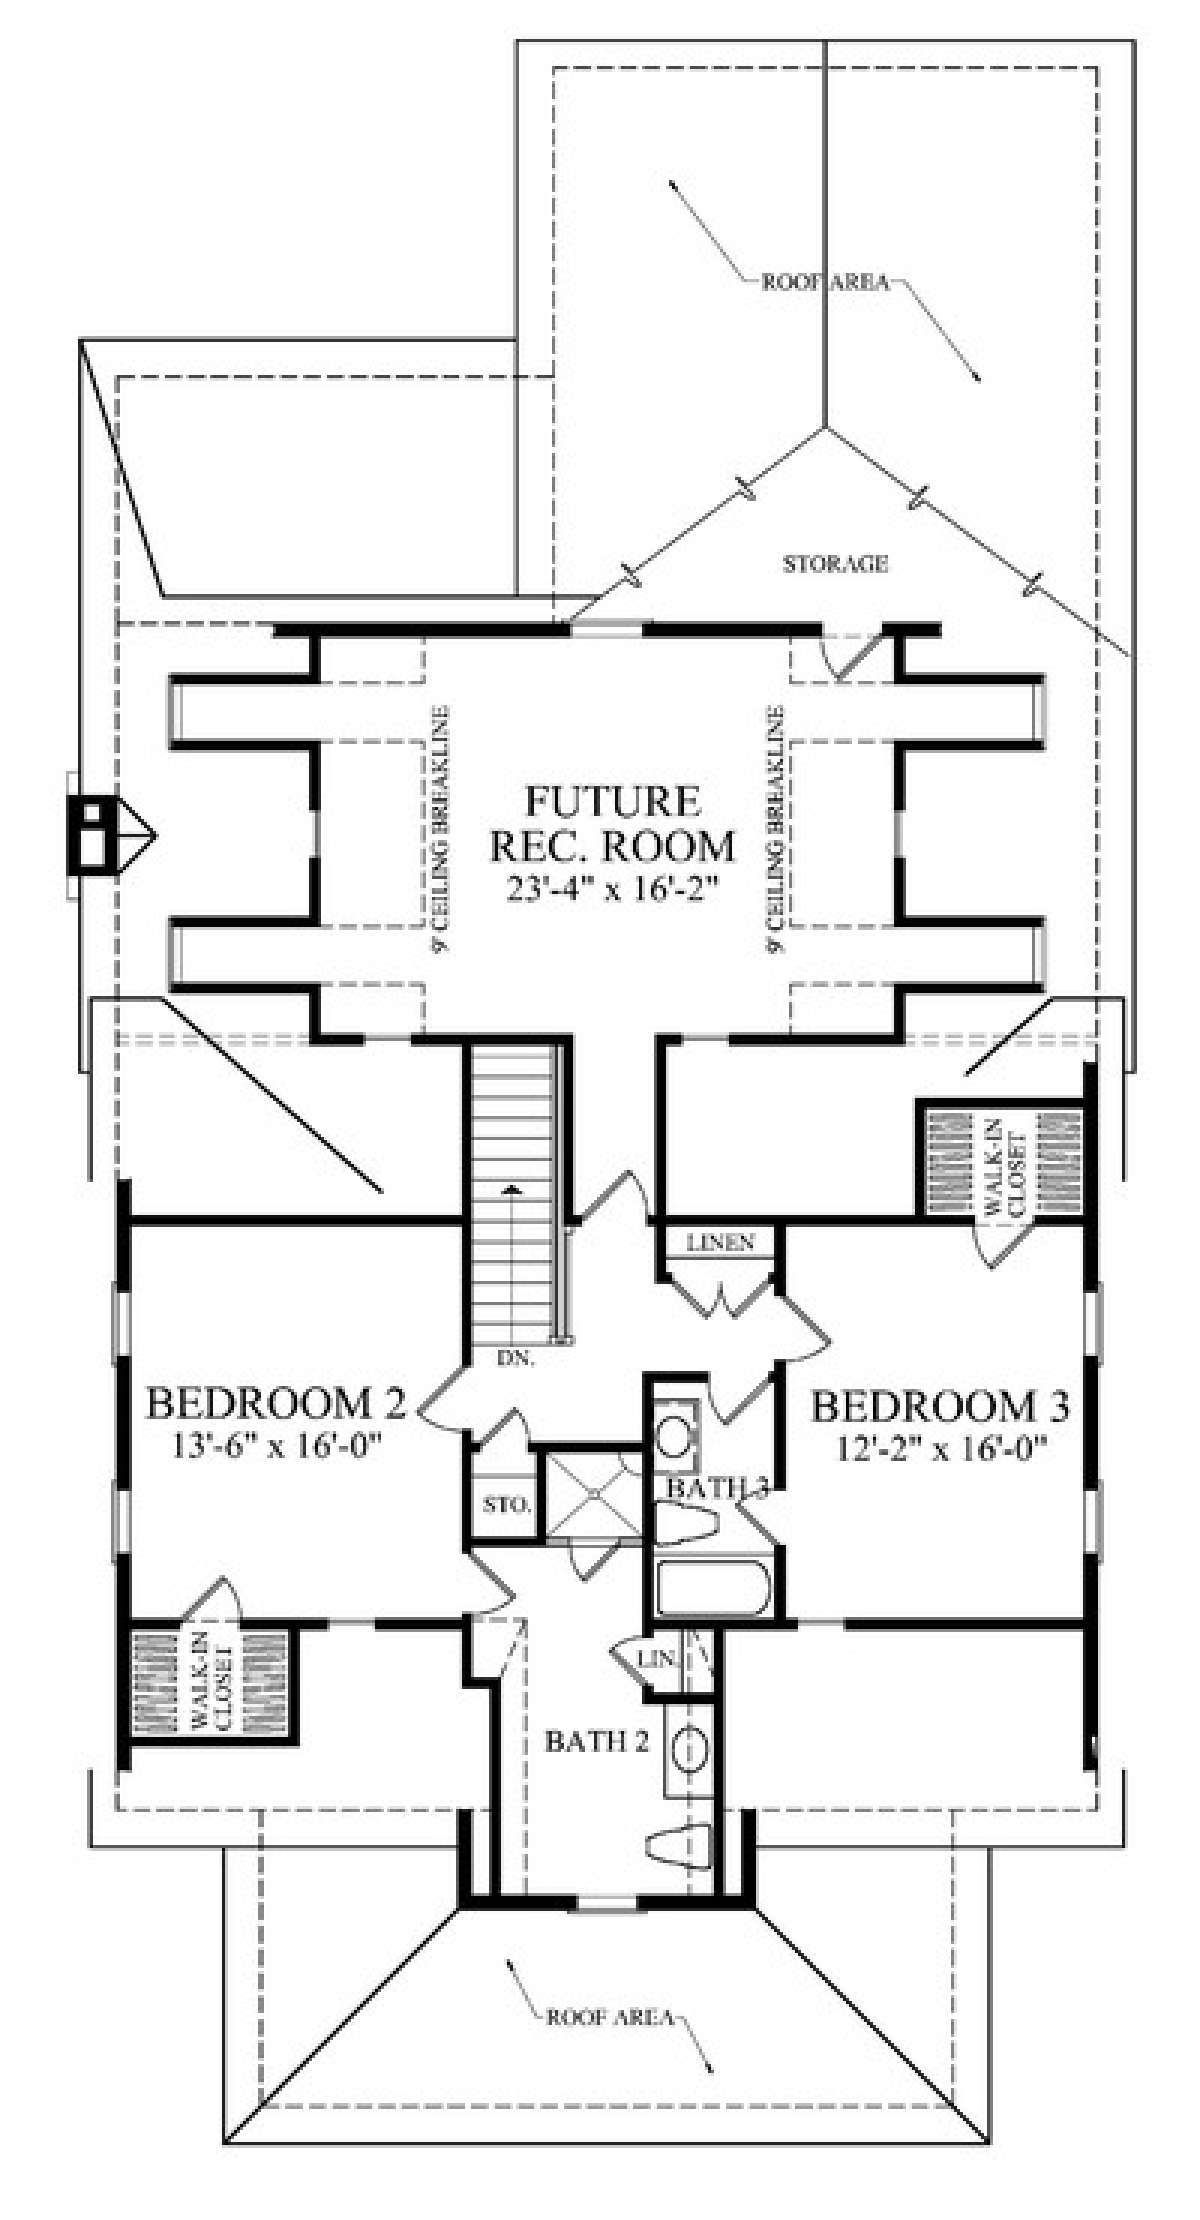 House Plan 7922 00097 Narrow Lot Plan 2 808 Square Feet 4 Bedrooms 4 Bathrooms In 2020 Farmhouse Style House Plans Craftsman Style House Plans Cottage Style House Plans